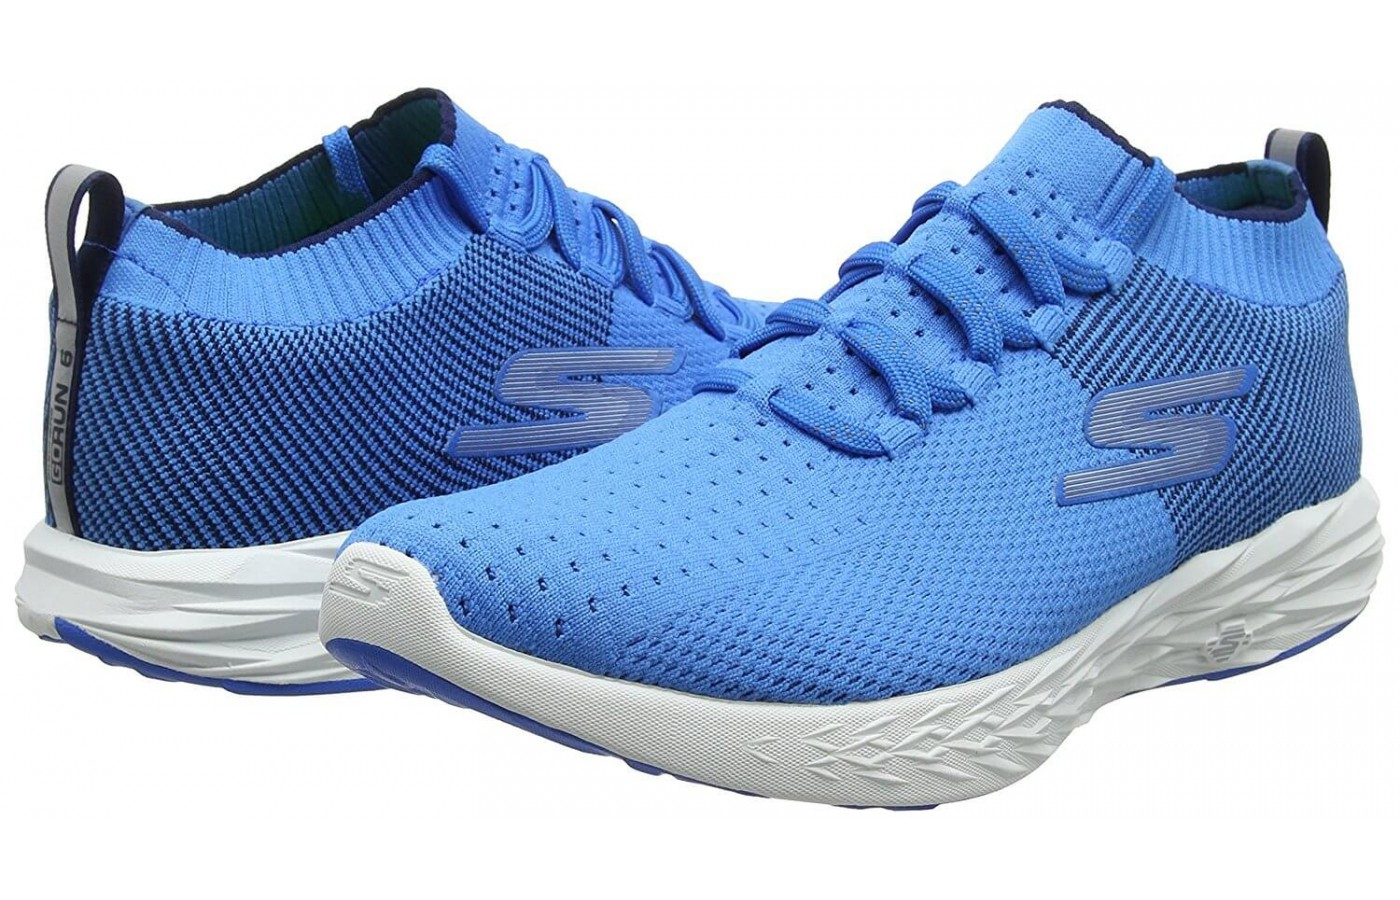 3d2d72a9 ... The Skechers GoRun 6 has a new knit upper design with a sock-like fit  ...